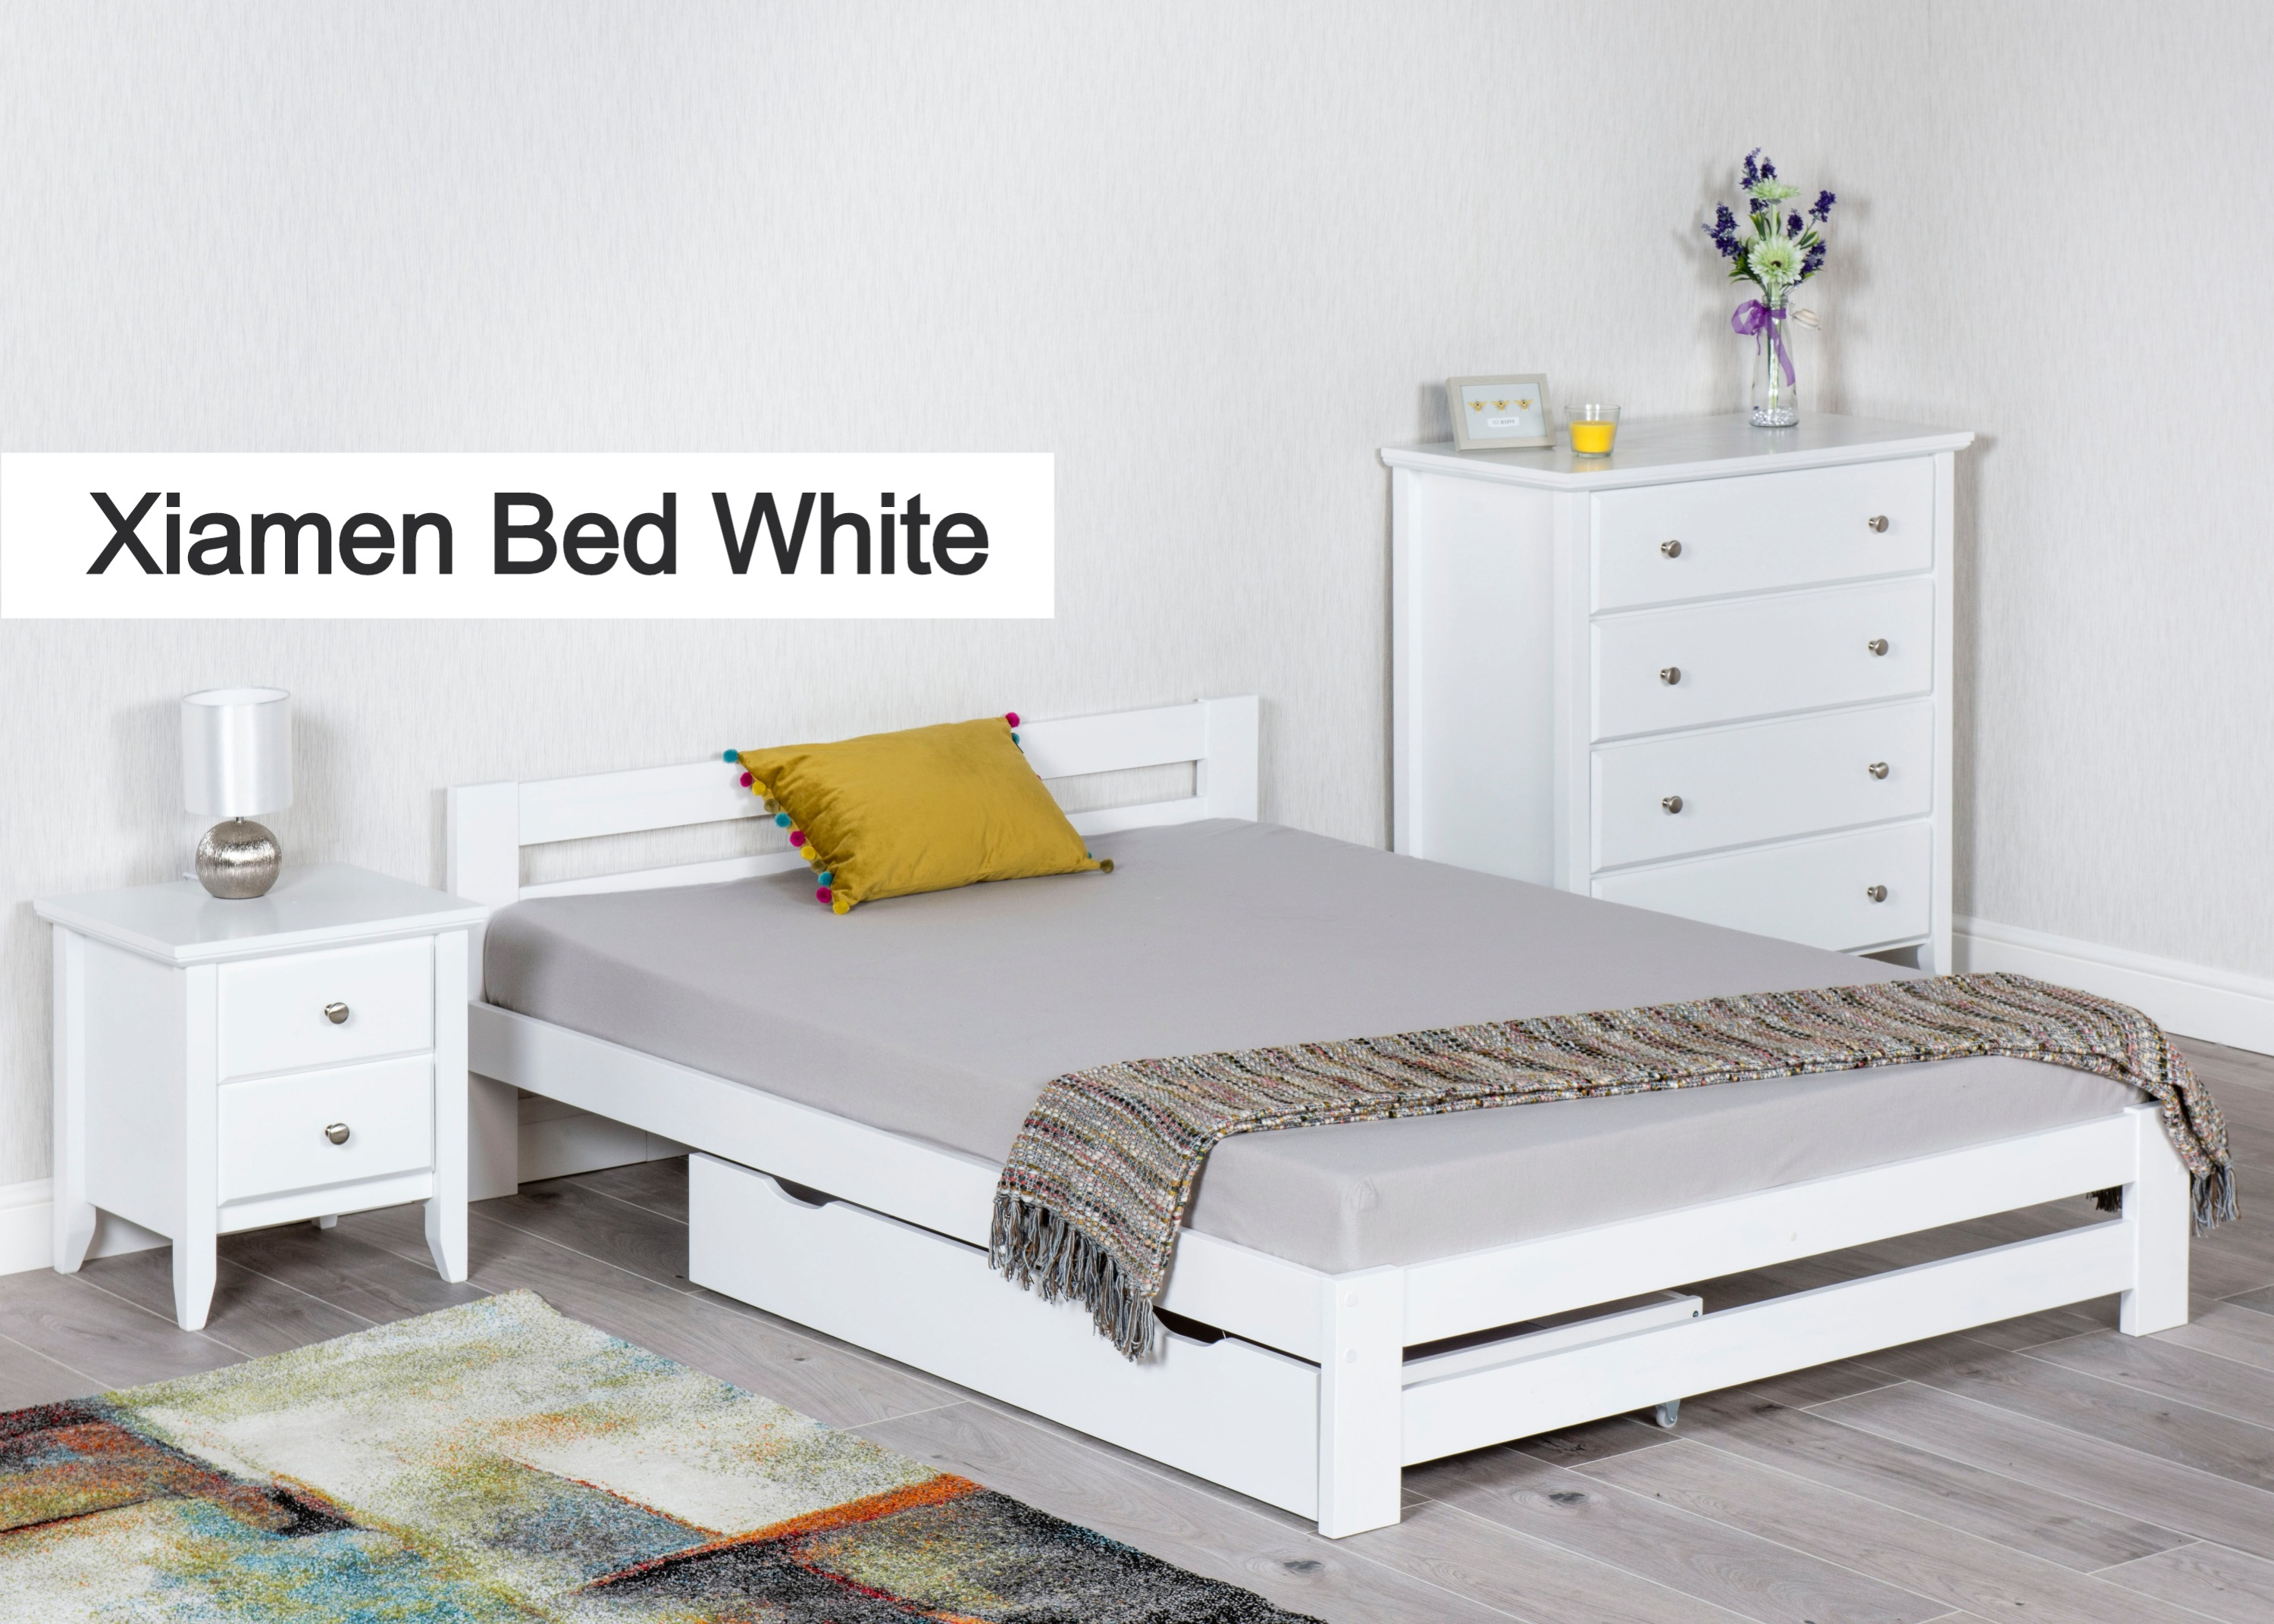 Xiamen Bed (White)